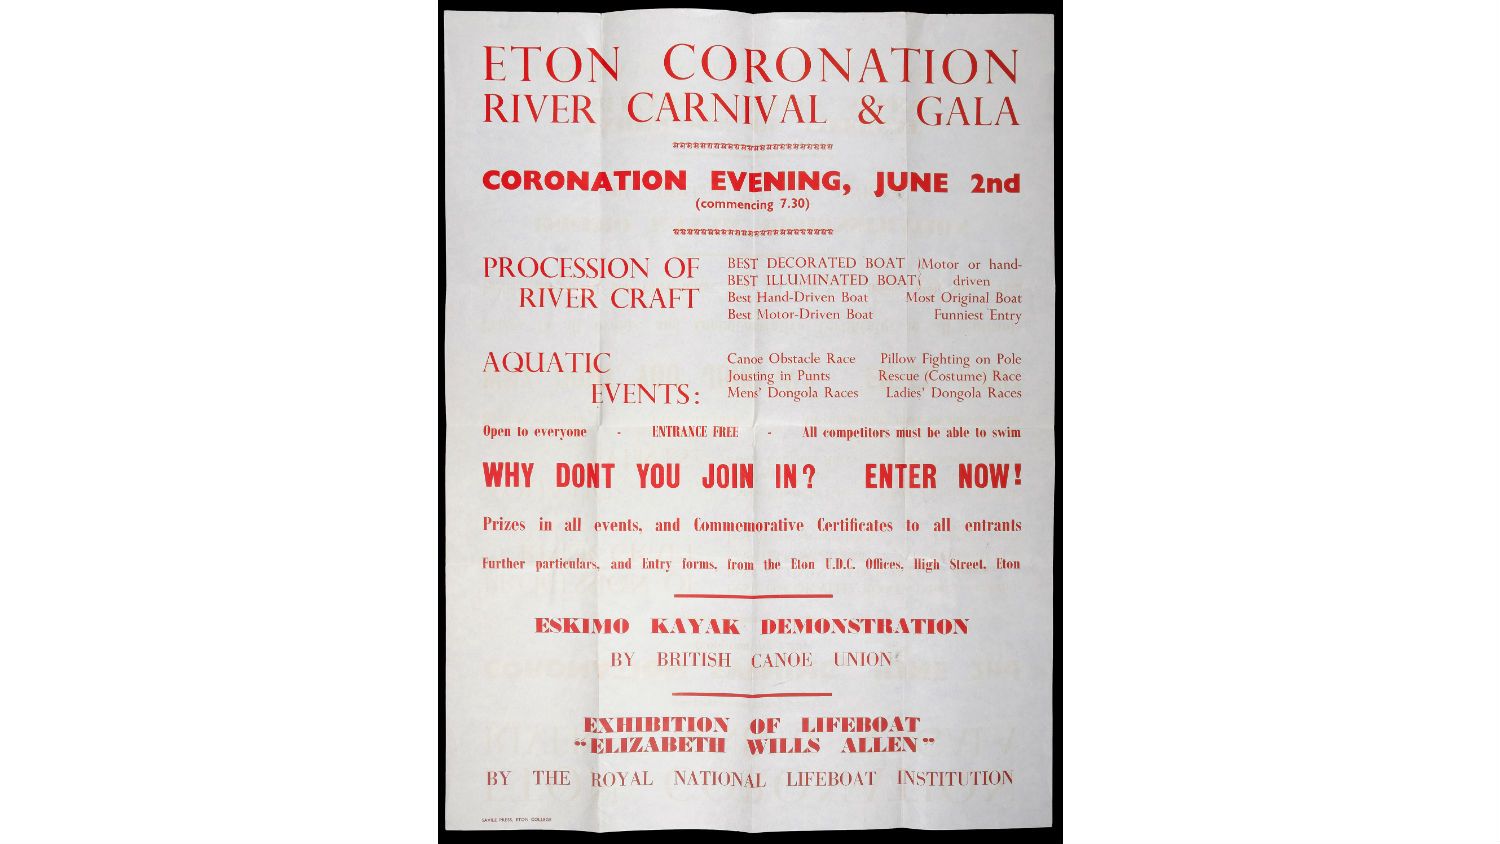 A poster advertising the Eton Coronation River Carnival and Gala